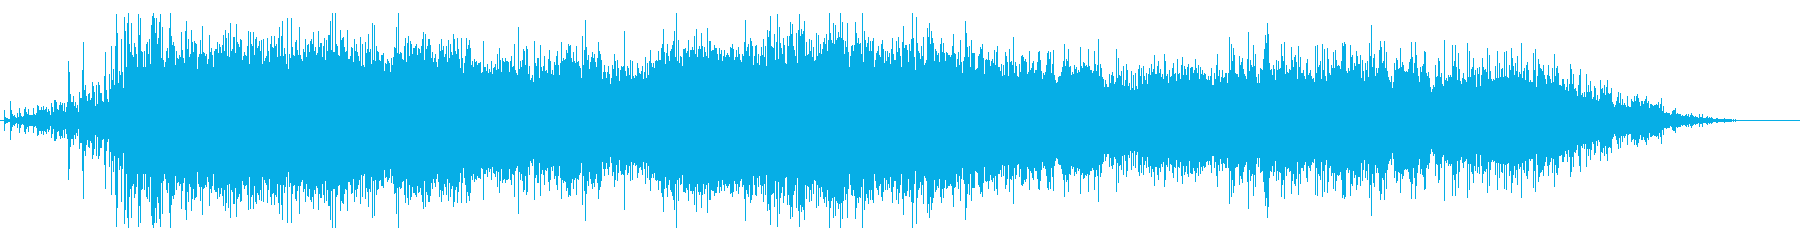 Applause at the start of the event's reproduced waveform